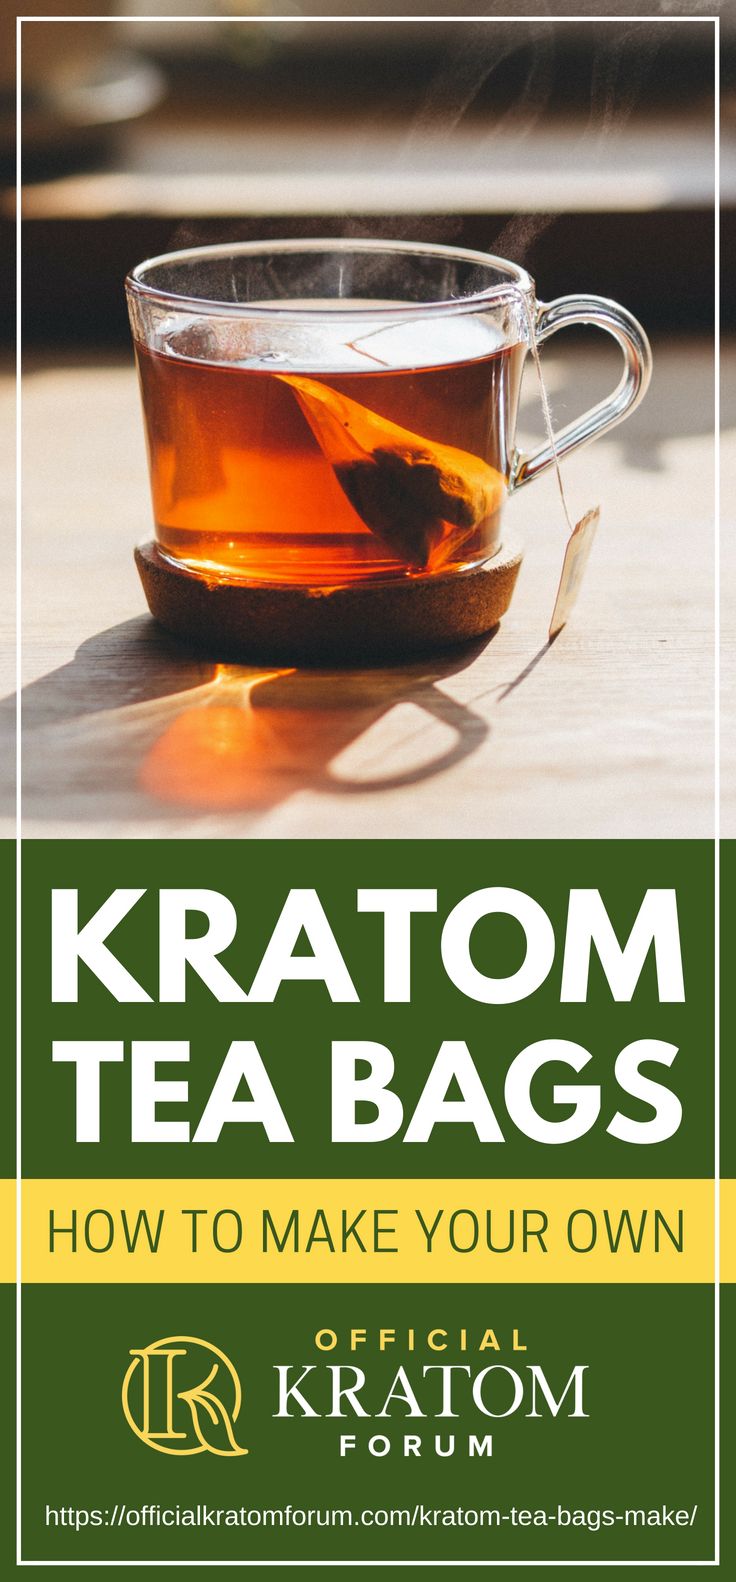 Kratom Tea Bags How To Make Your Own Is One Of